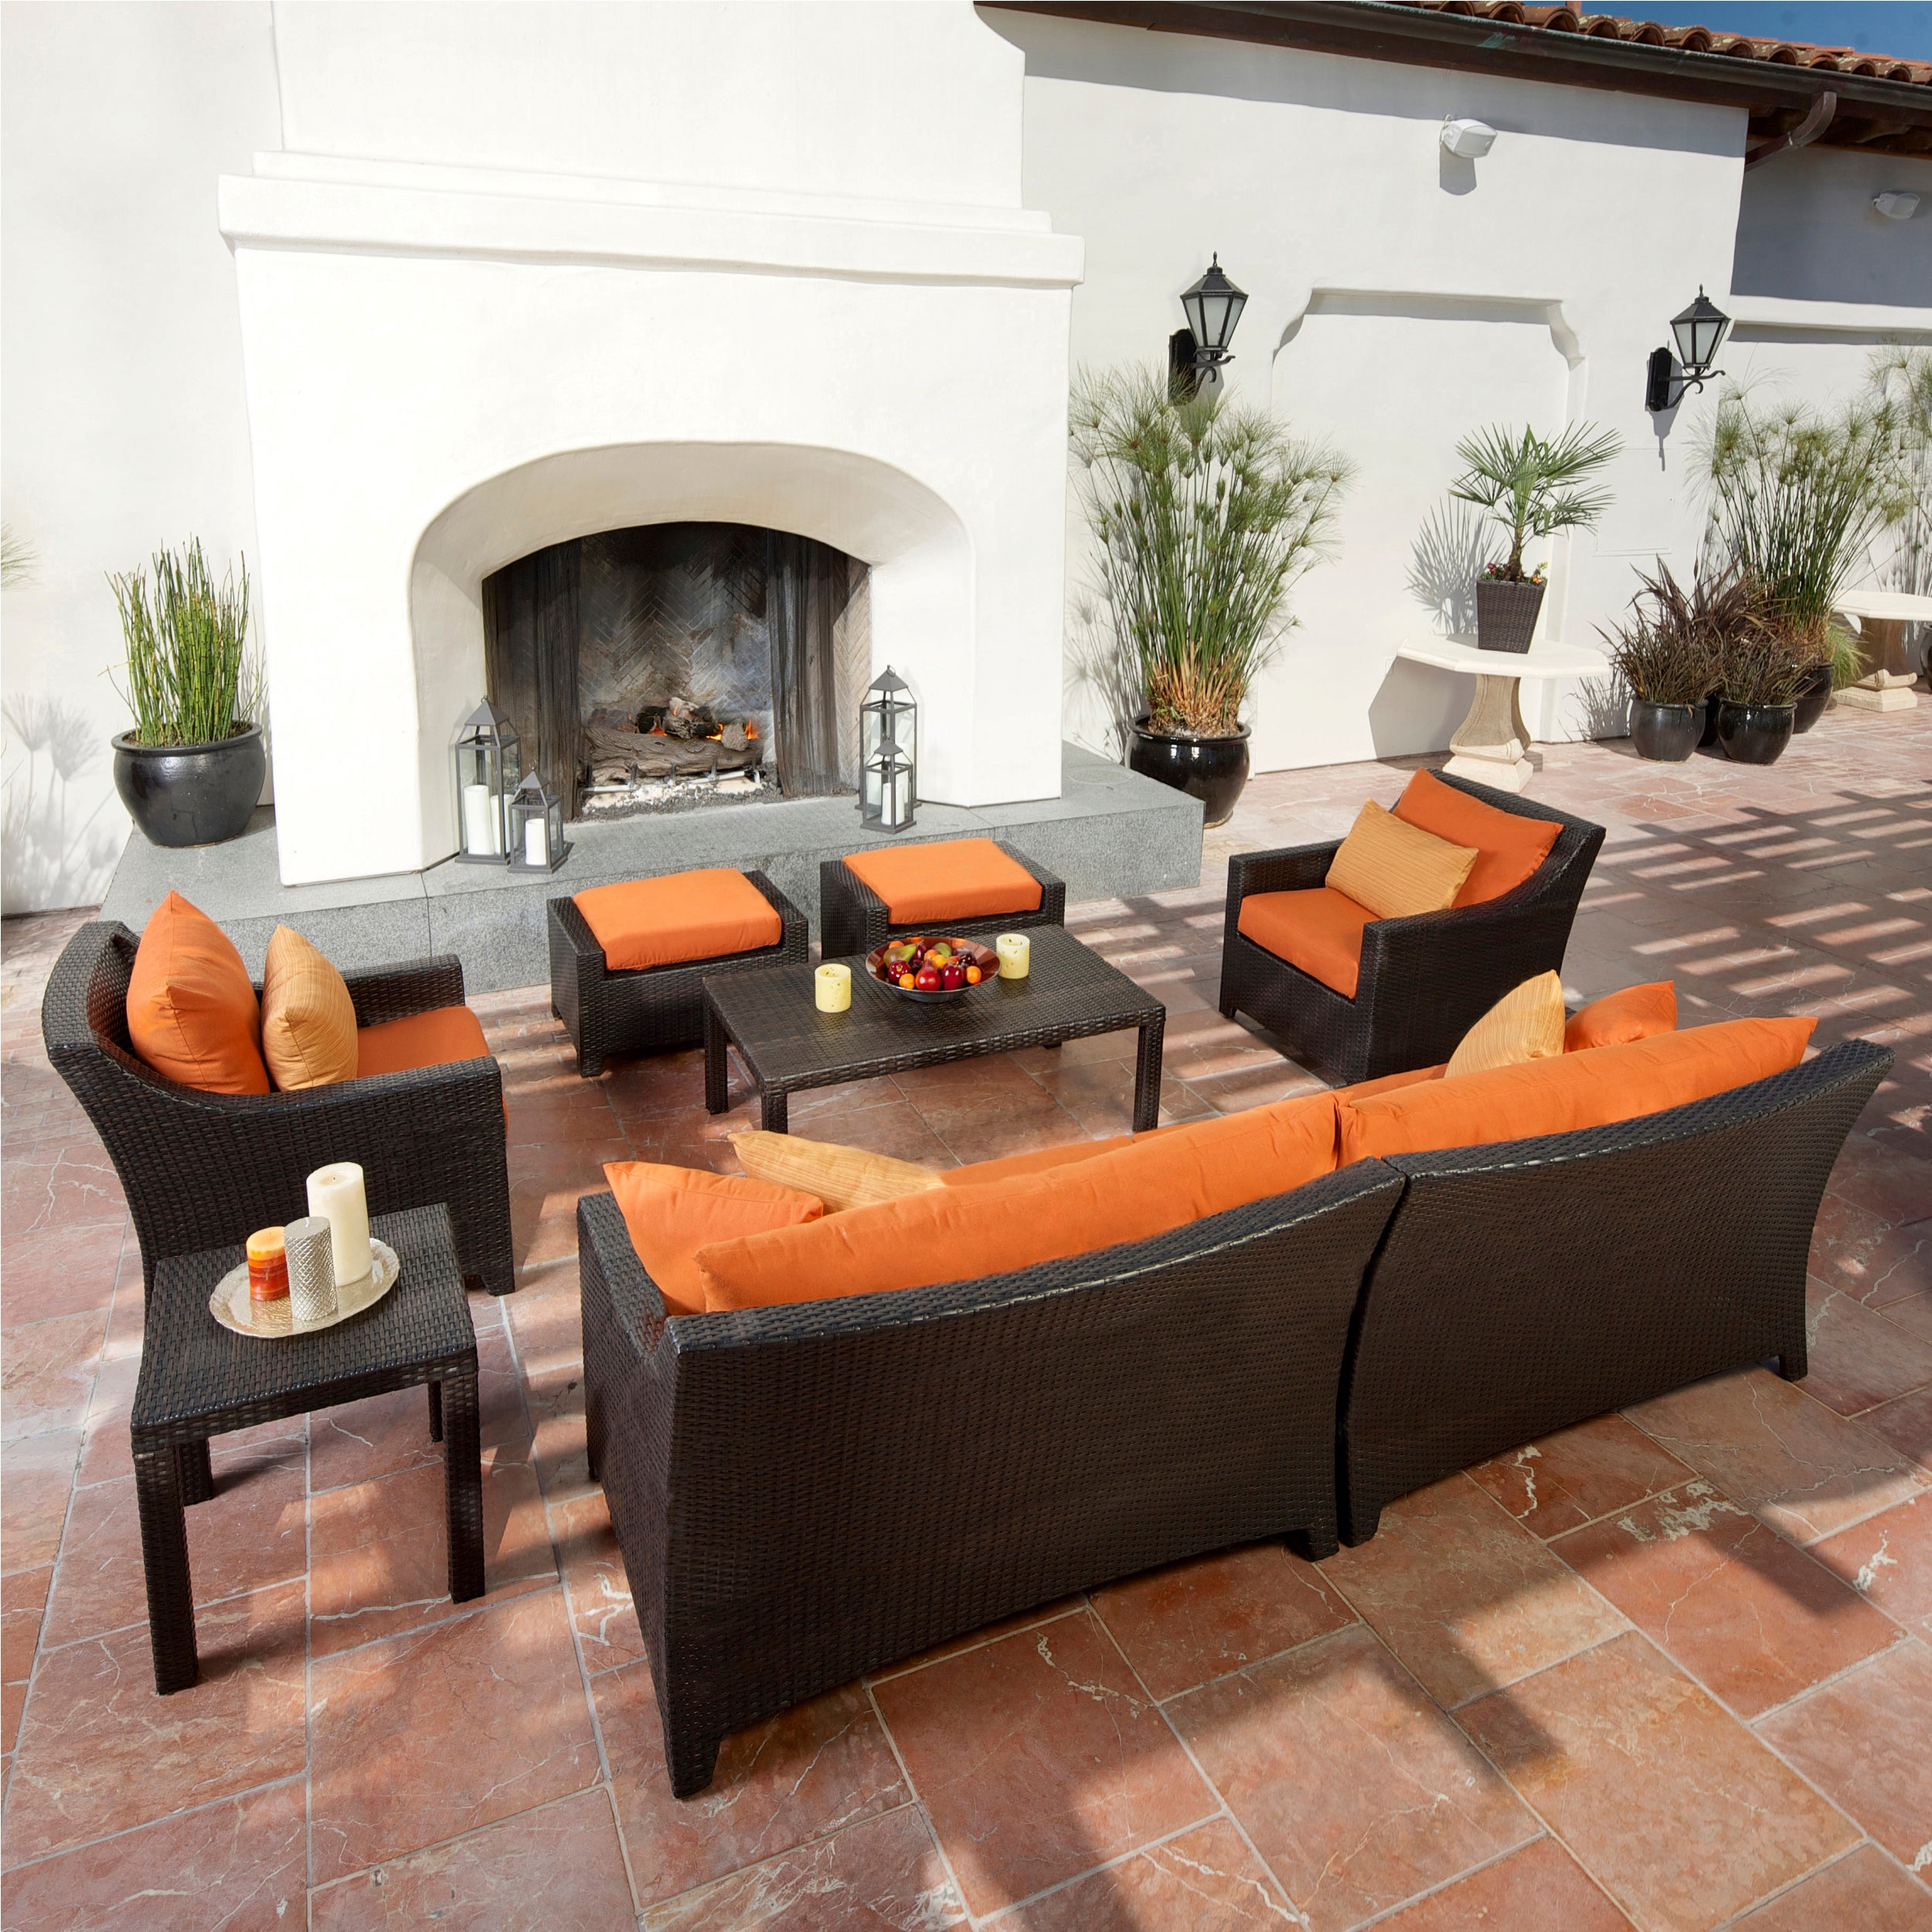 RST Outdoor Tikka 8 Piece Sofa Club Chair and Ottomans Patio